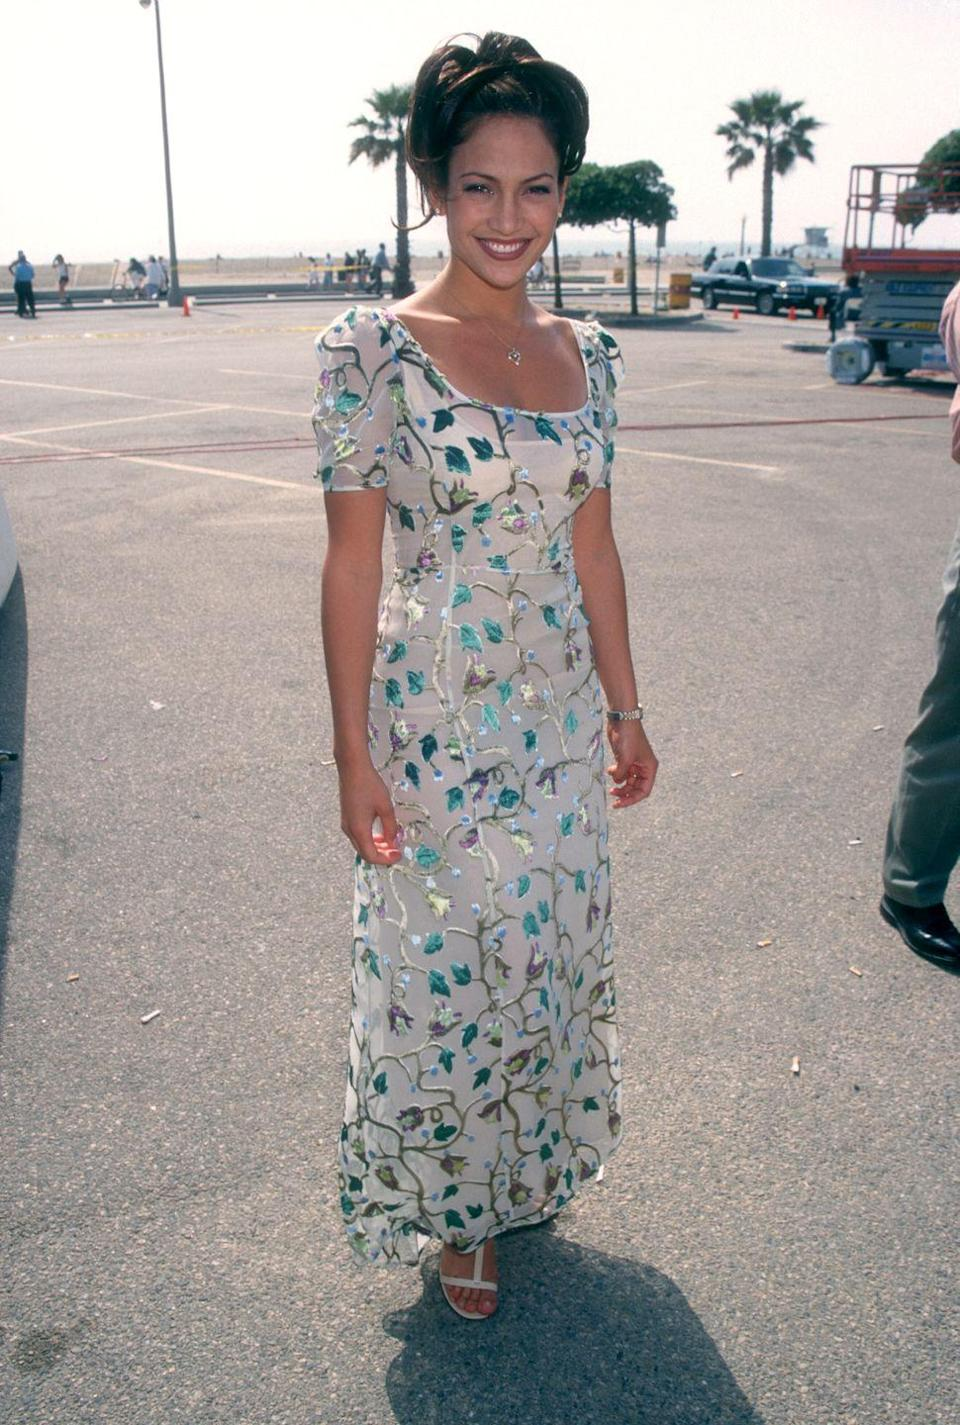 <p>At the beach in a velvet embellished sheer dress with puff sleeves.</p>